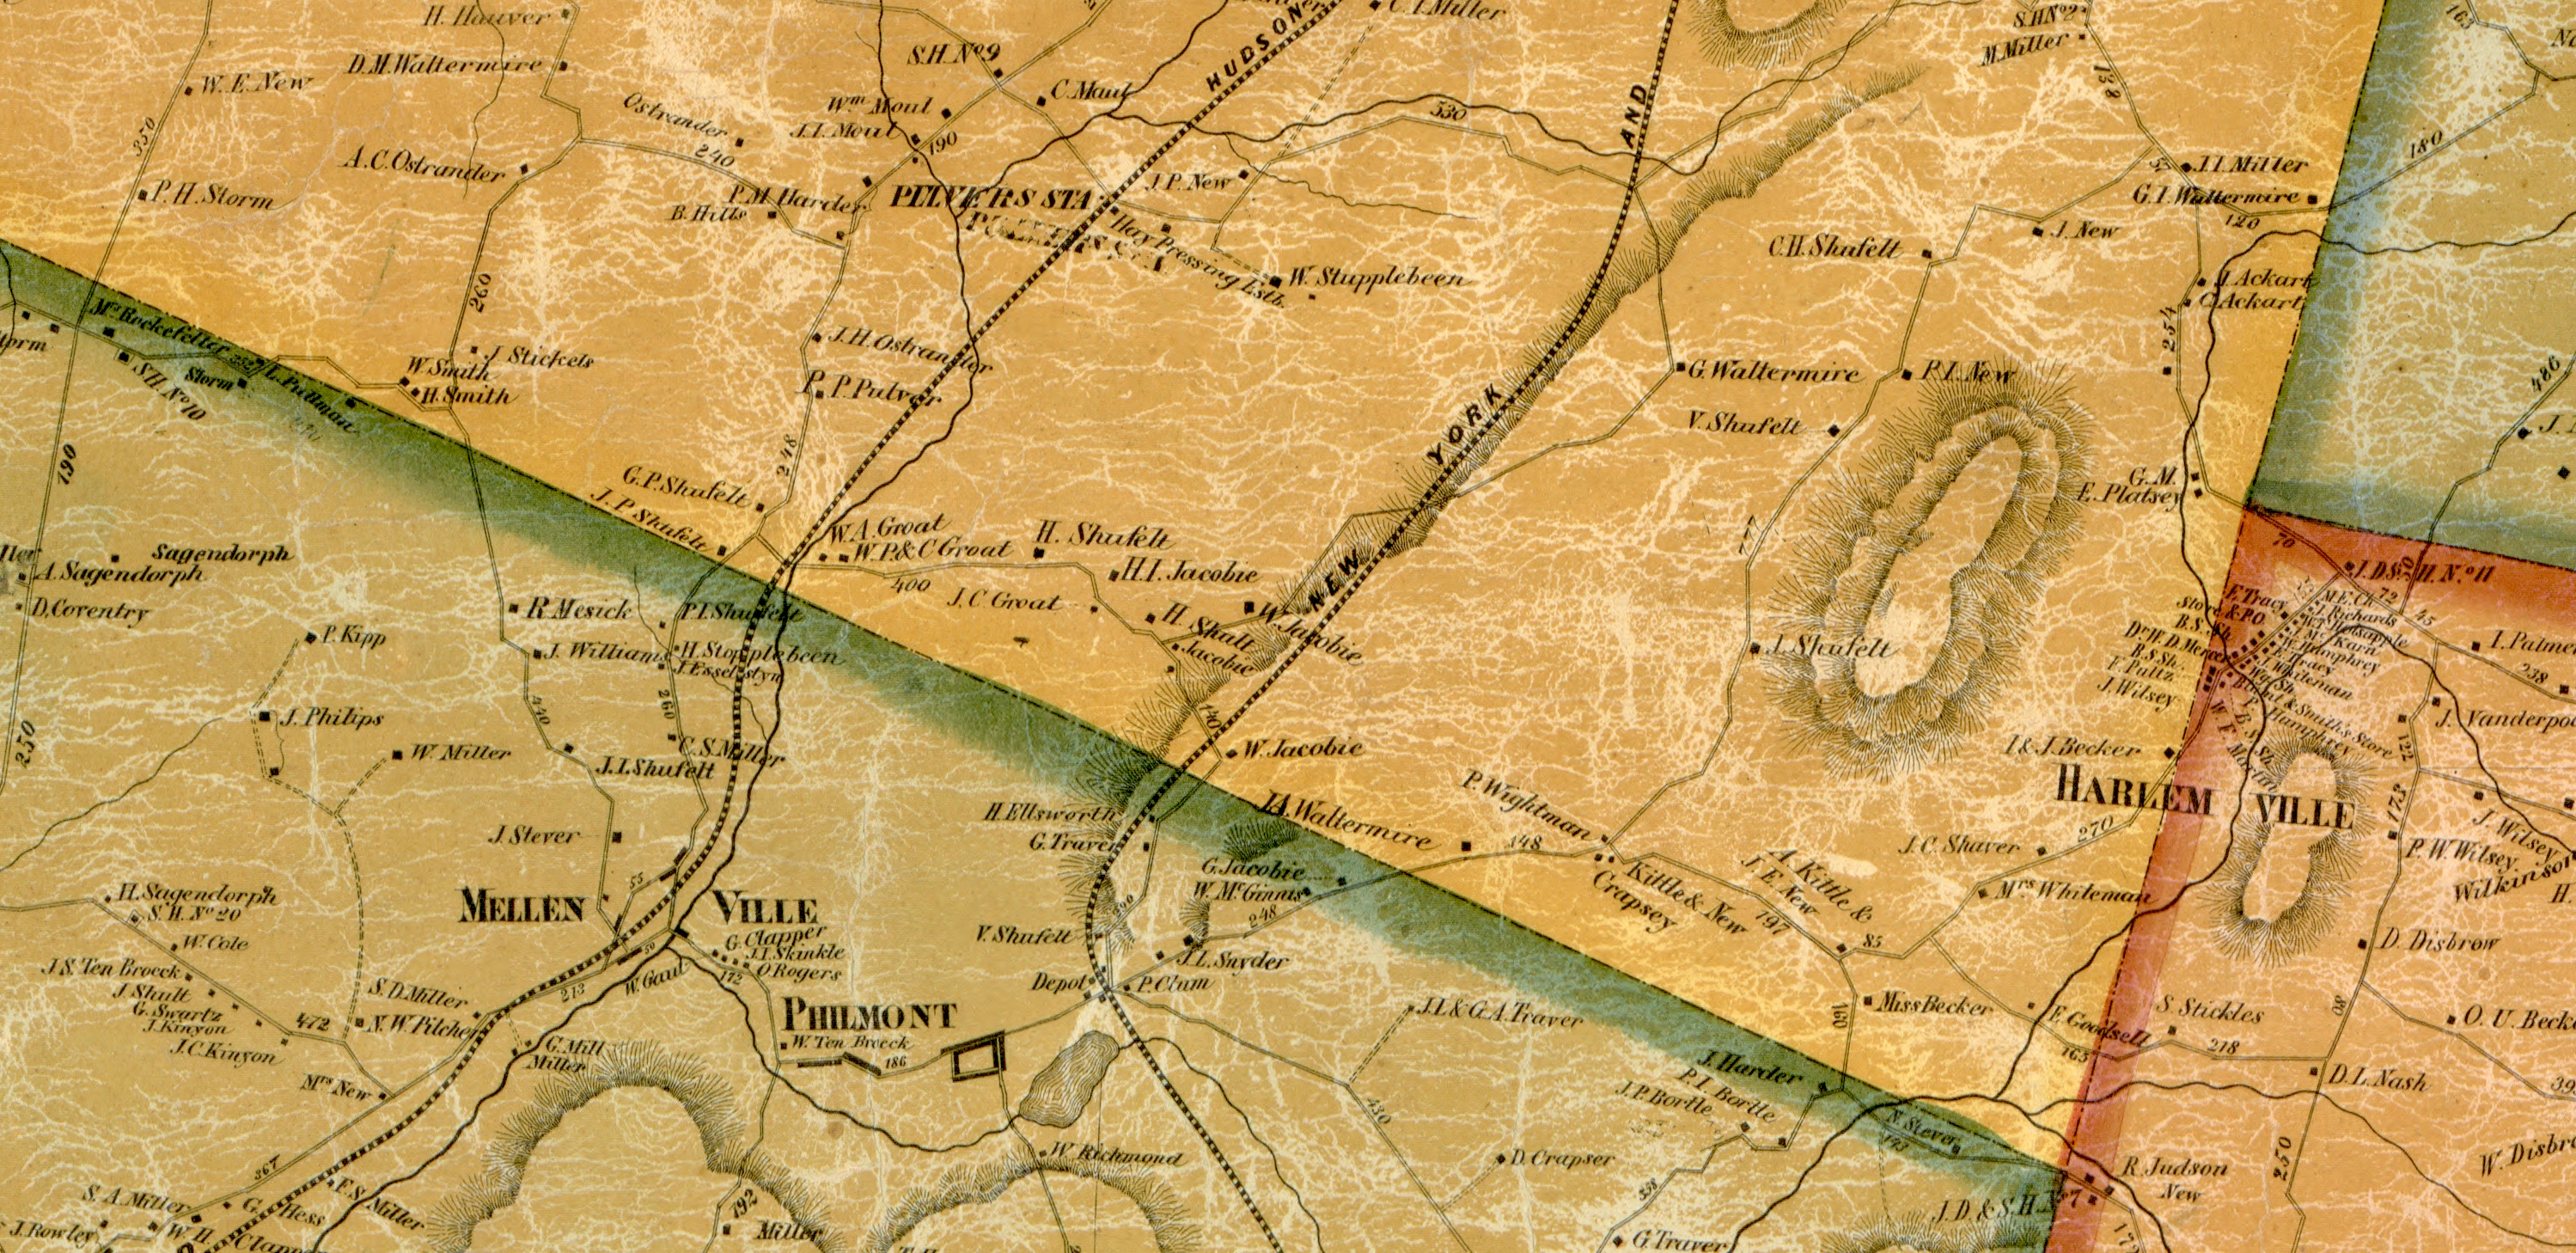 Free hires historical map of Columbia County SamPrattcom